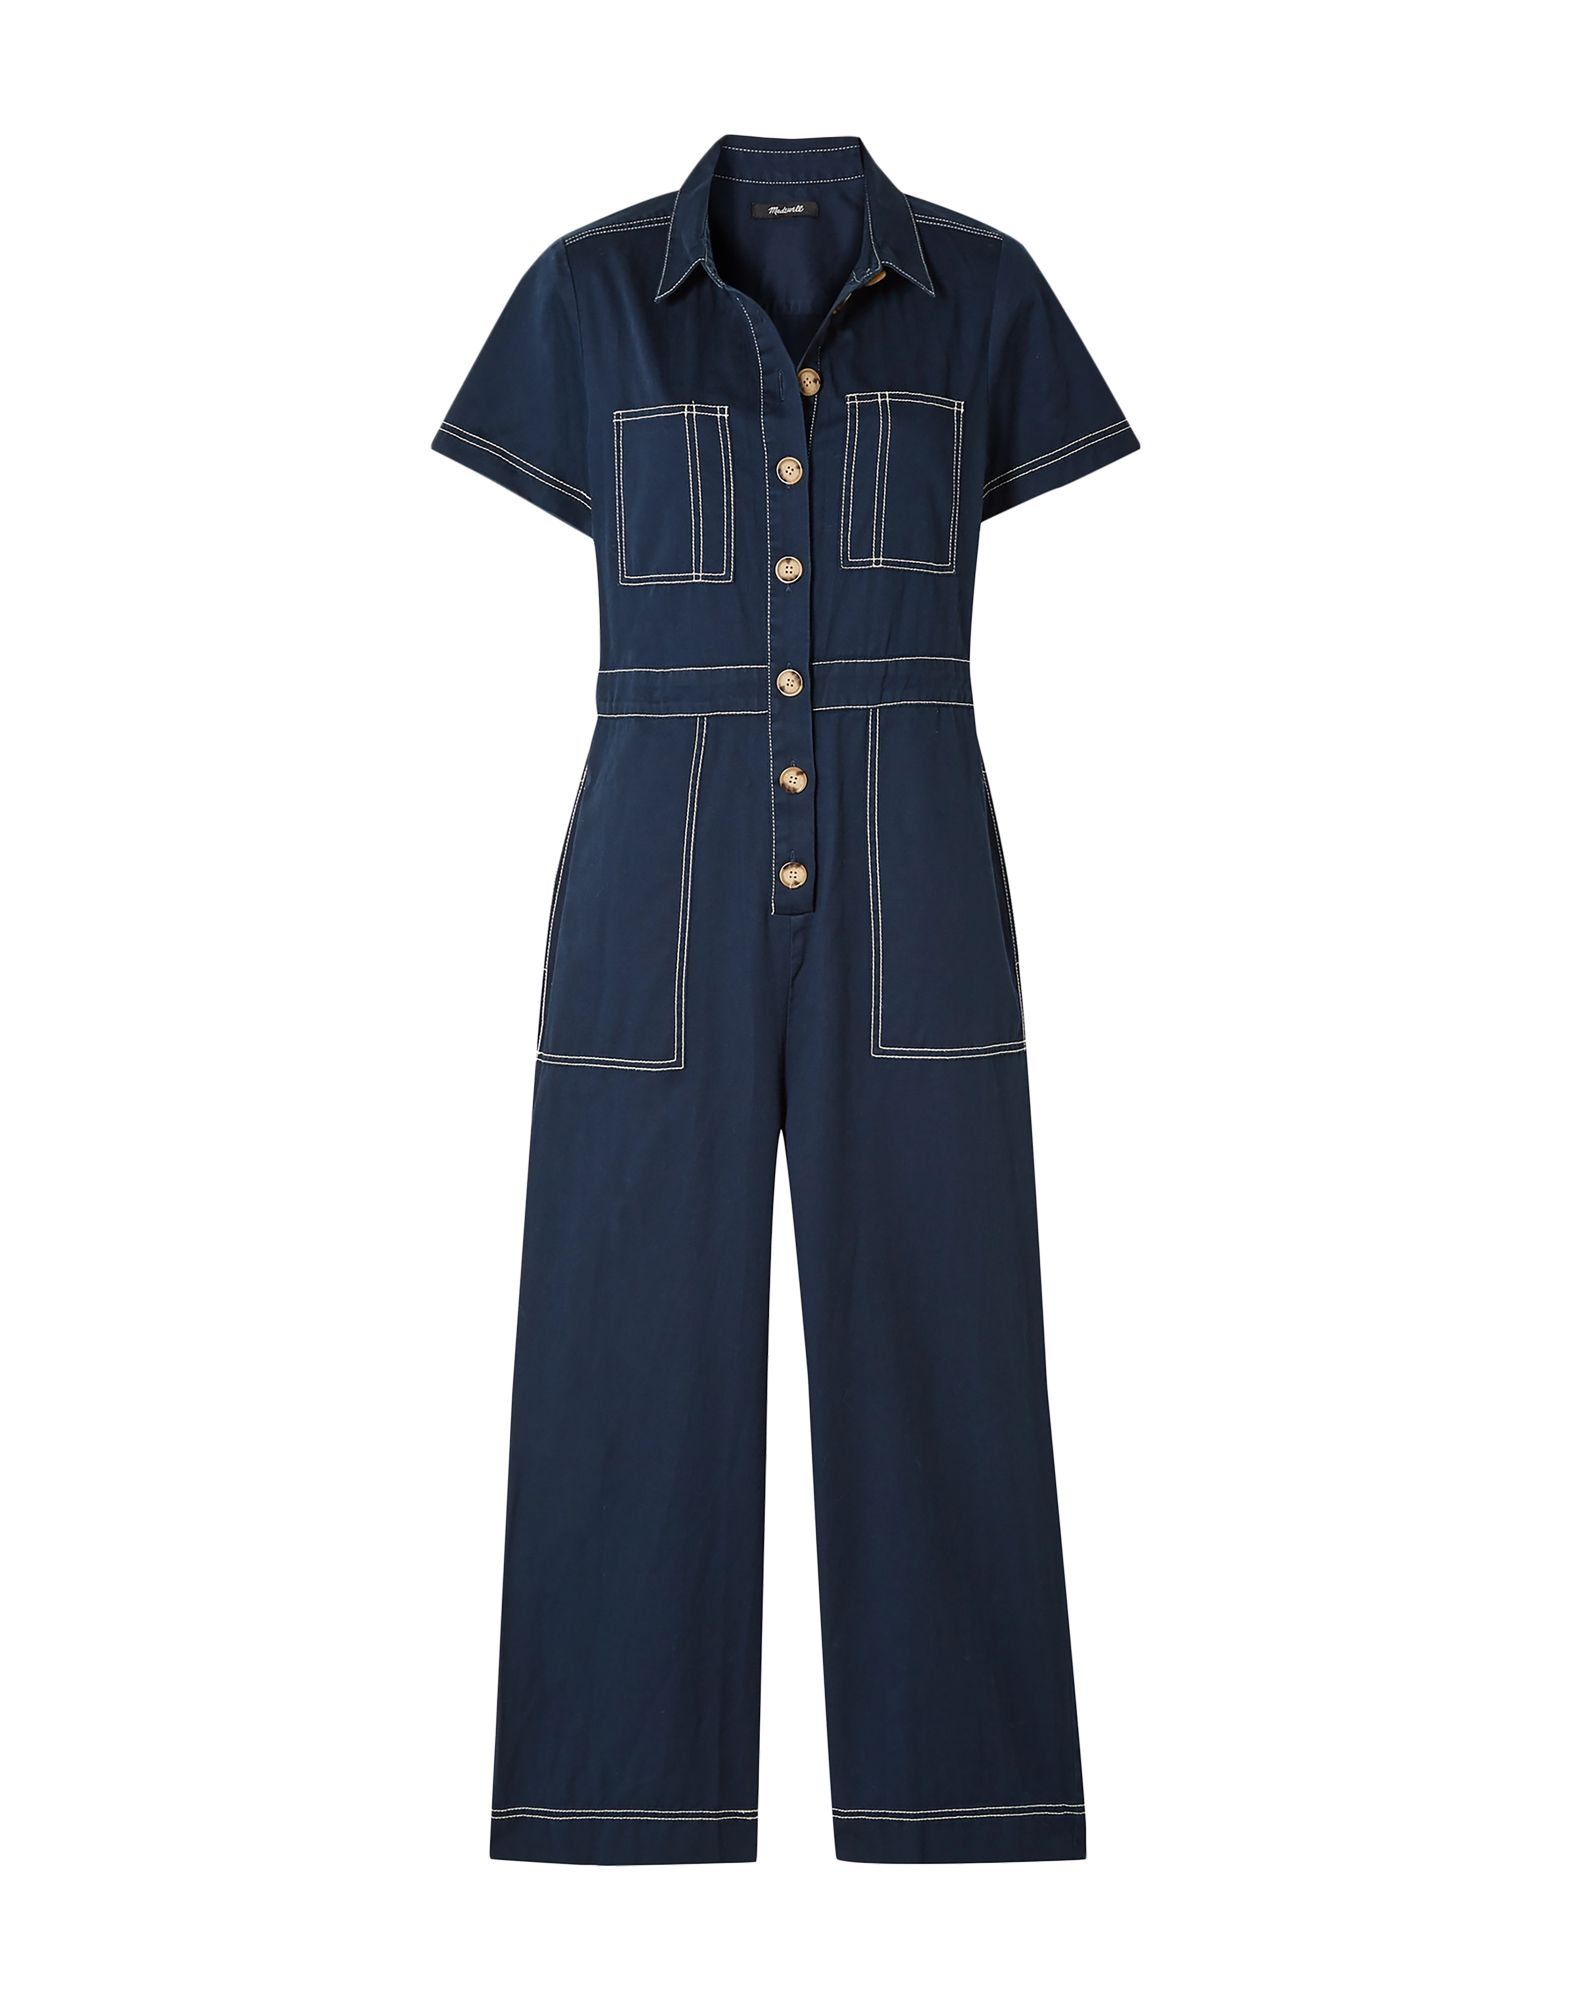 MADEWELL Jumpsuits. twill, stitching, basic solid color, short sleeves, classic neckline, multipockets, two breast pockets, button closing, front closure. 100% Cotton